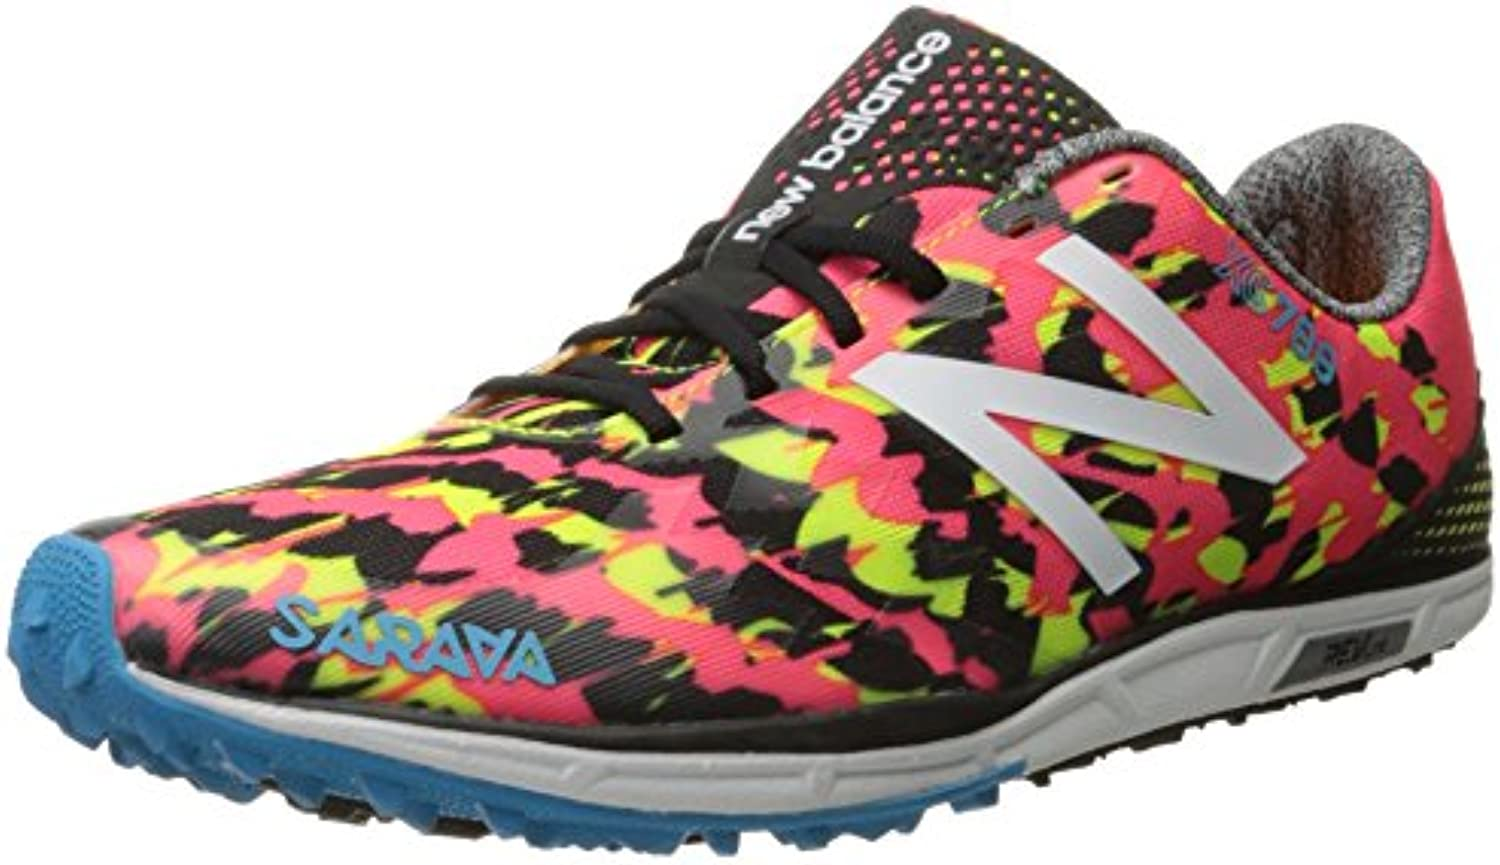 New Balance Mujer 700v4 Track Spike Running Shoe, Pink/Black, 35 EU